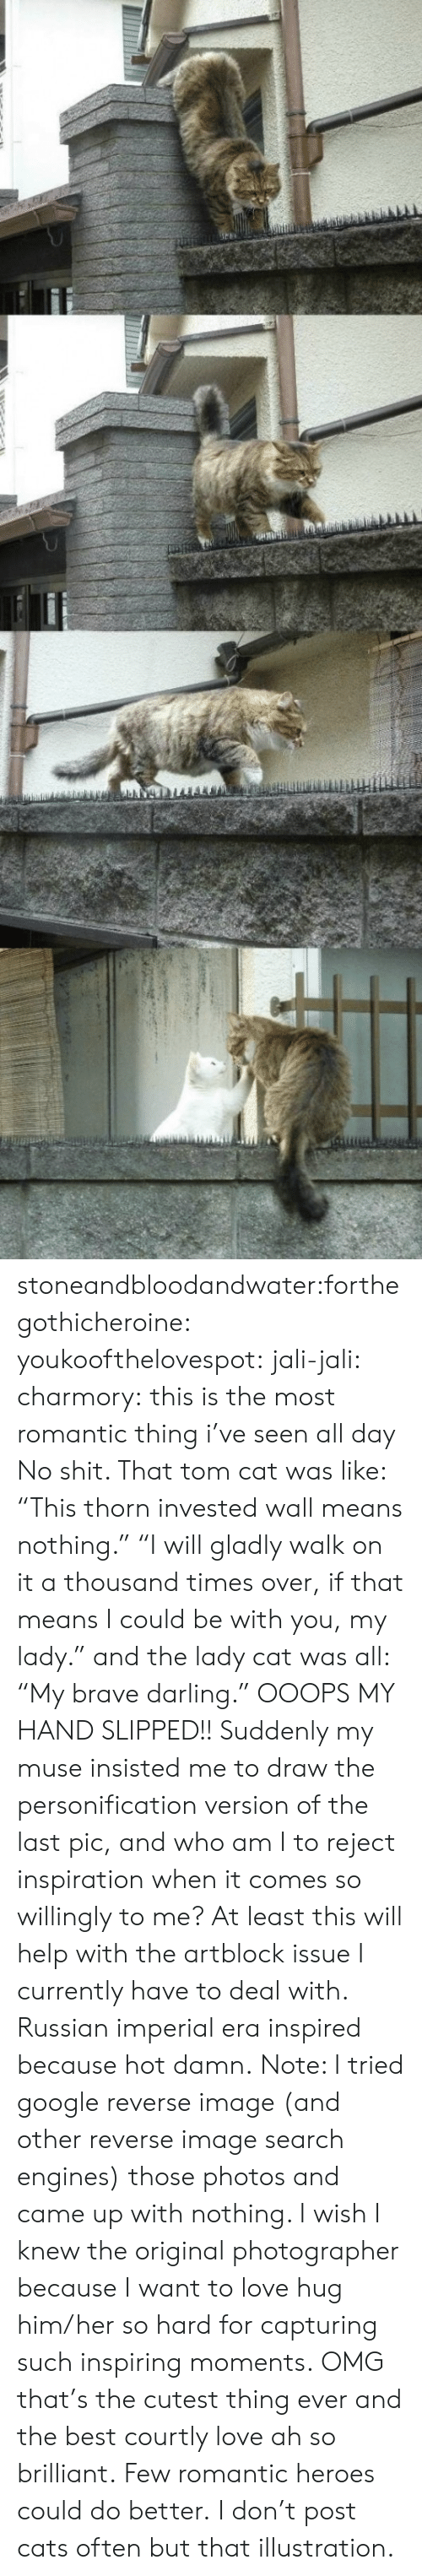 """Cats, Google, and Love: stoneandbloodandwater:forthegothicheroine:  youkoofthelovespot:  jali-jali:  charmory:  this is the most romantic thing i've seen all day  No shit. That tom cat was like: """"This thorn invested wall means nothing."""" """"I will gladly walk on it a thousand times over, if that means I could be with you, my lady."""" and the lady cat was all: """"My brave darling."""" OOOPS MY HAND SLIPPED!! Suddenly my muse insisted me to draw the personification version of the last pic, and who am I to reject inspiration when it comes so willingly to me? At least this will help with the artblock issue I currently have to deal with. Russian imperial era inspired because hot damn. Note: I tried google reverse image (and other reverse image search engines) those photos and came up with nothing. I wish I knew the original photographer because I want to love hug him/her so hard for capturing such inspiring moments.  OMG that's the cutest thing ever and the best courtly love ah so brilliant.  Few romantic heroes could do better.  I don't post cats often butthat illustration."""